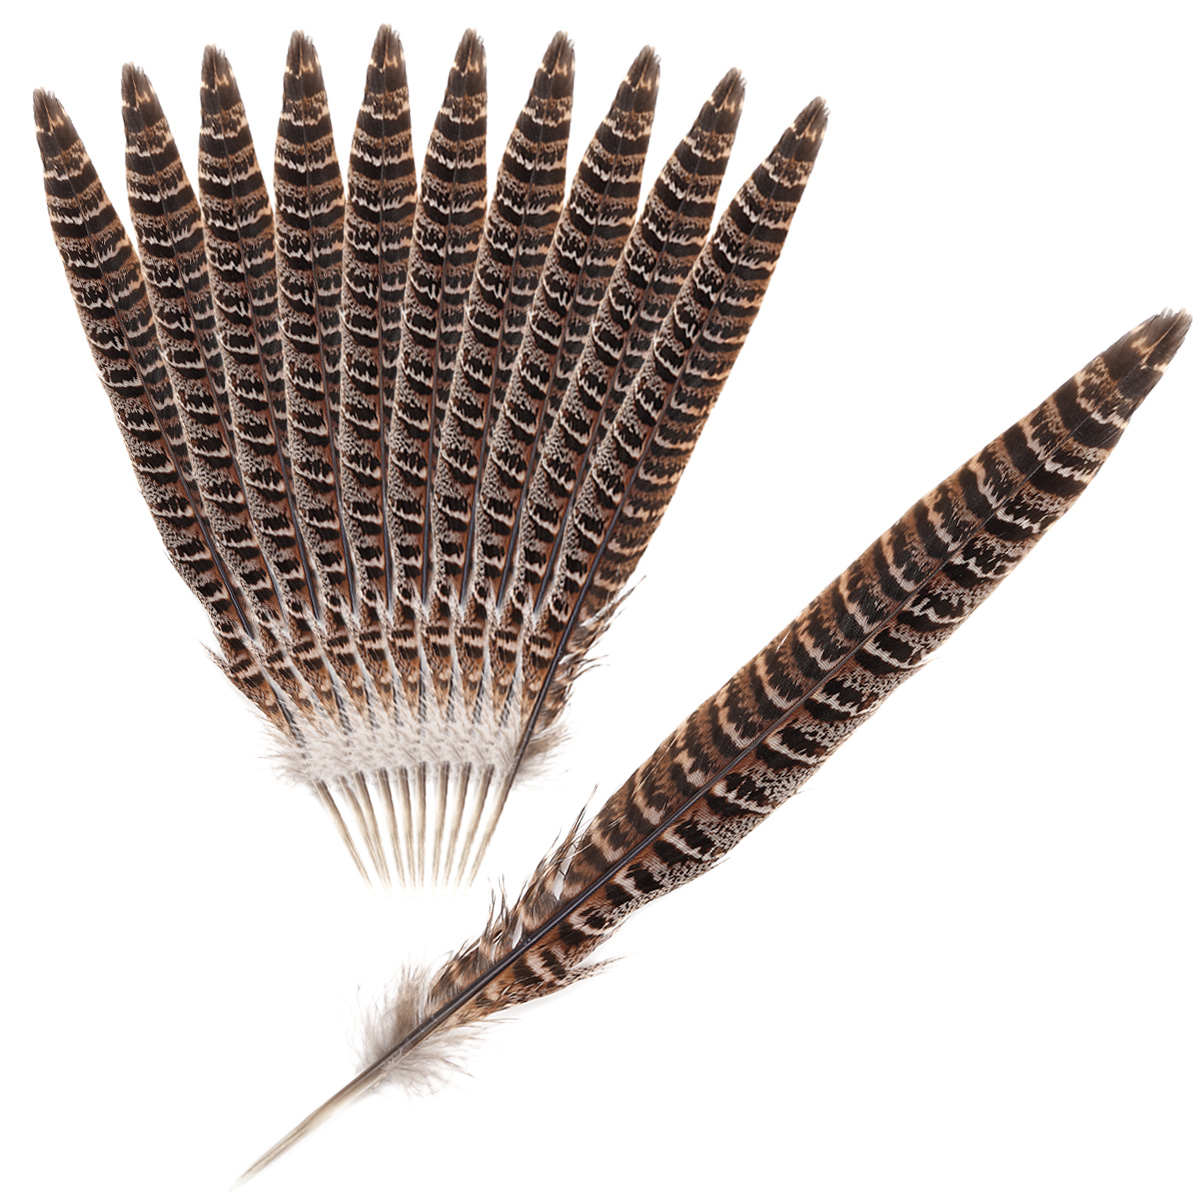 25-30CM//10-12inches Hen Pheasant Tail Feathers For Crafts DIY Wedding Decora